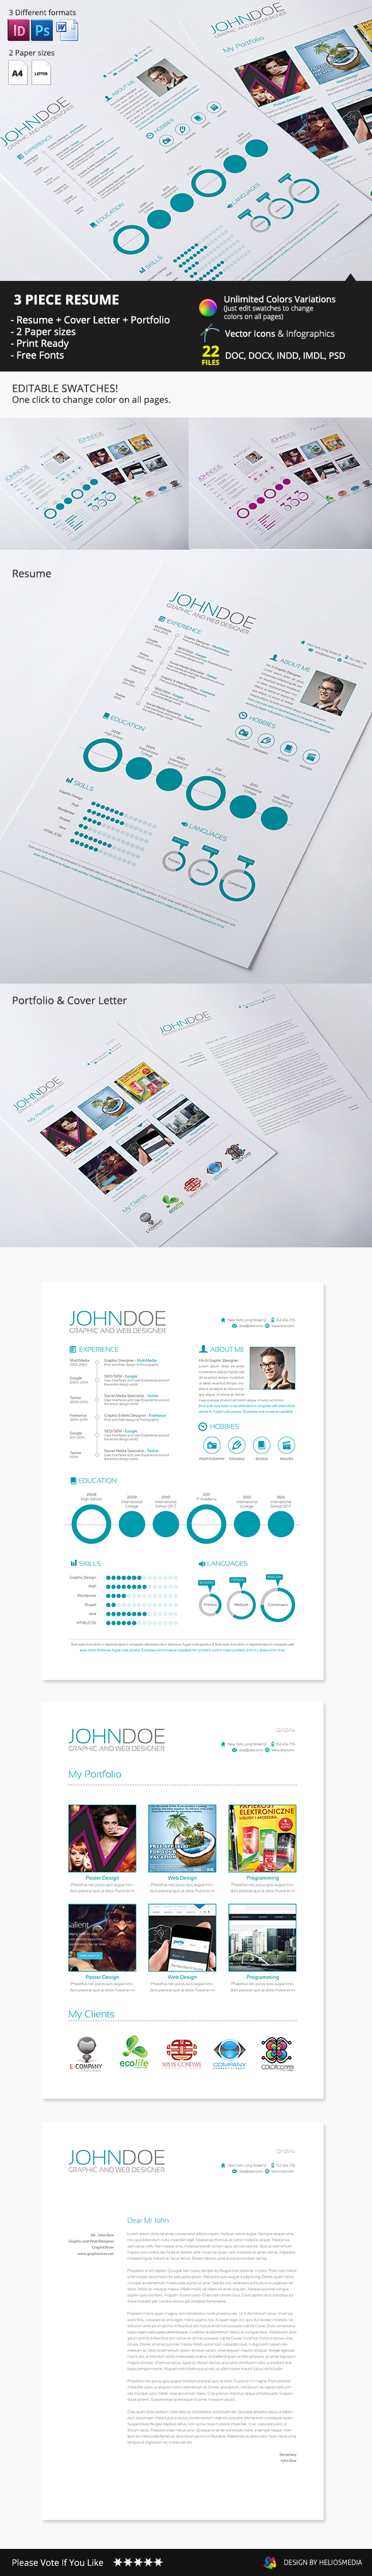 3-piece resume,Any color,clean,cover letter,creative,template,Curriculum Vitae,CV,easy to,Customize,elegant,InDesign,minimalist,design,modern